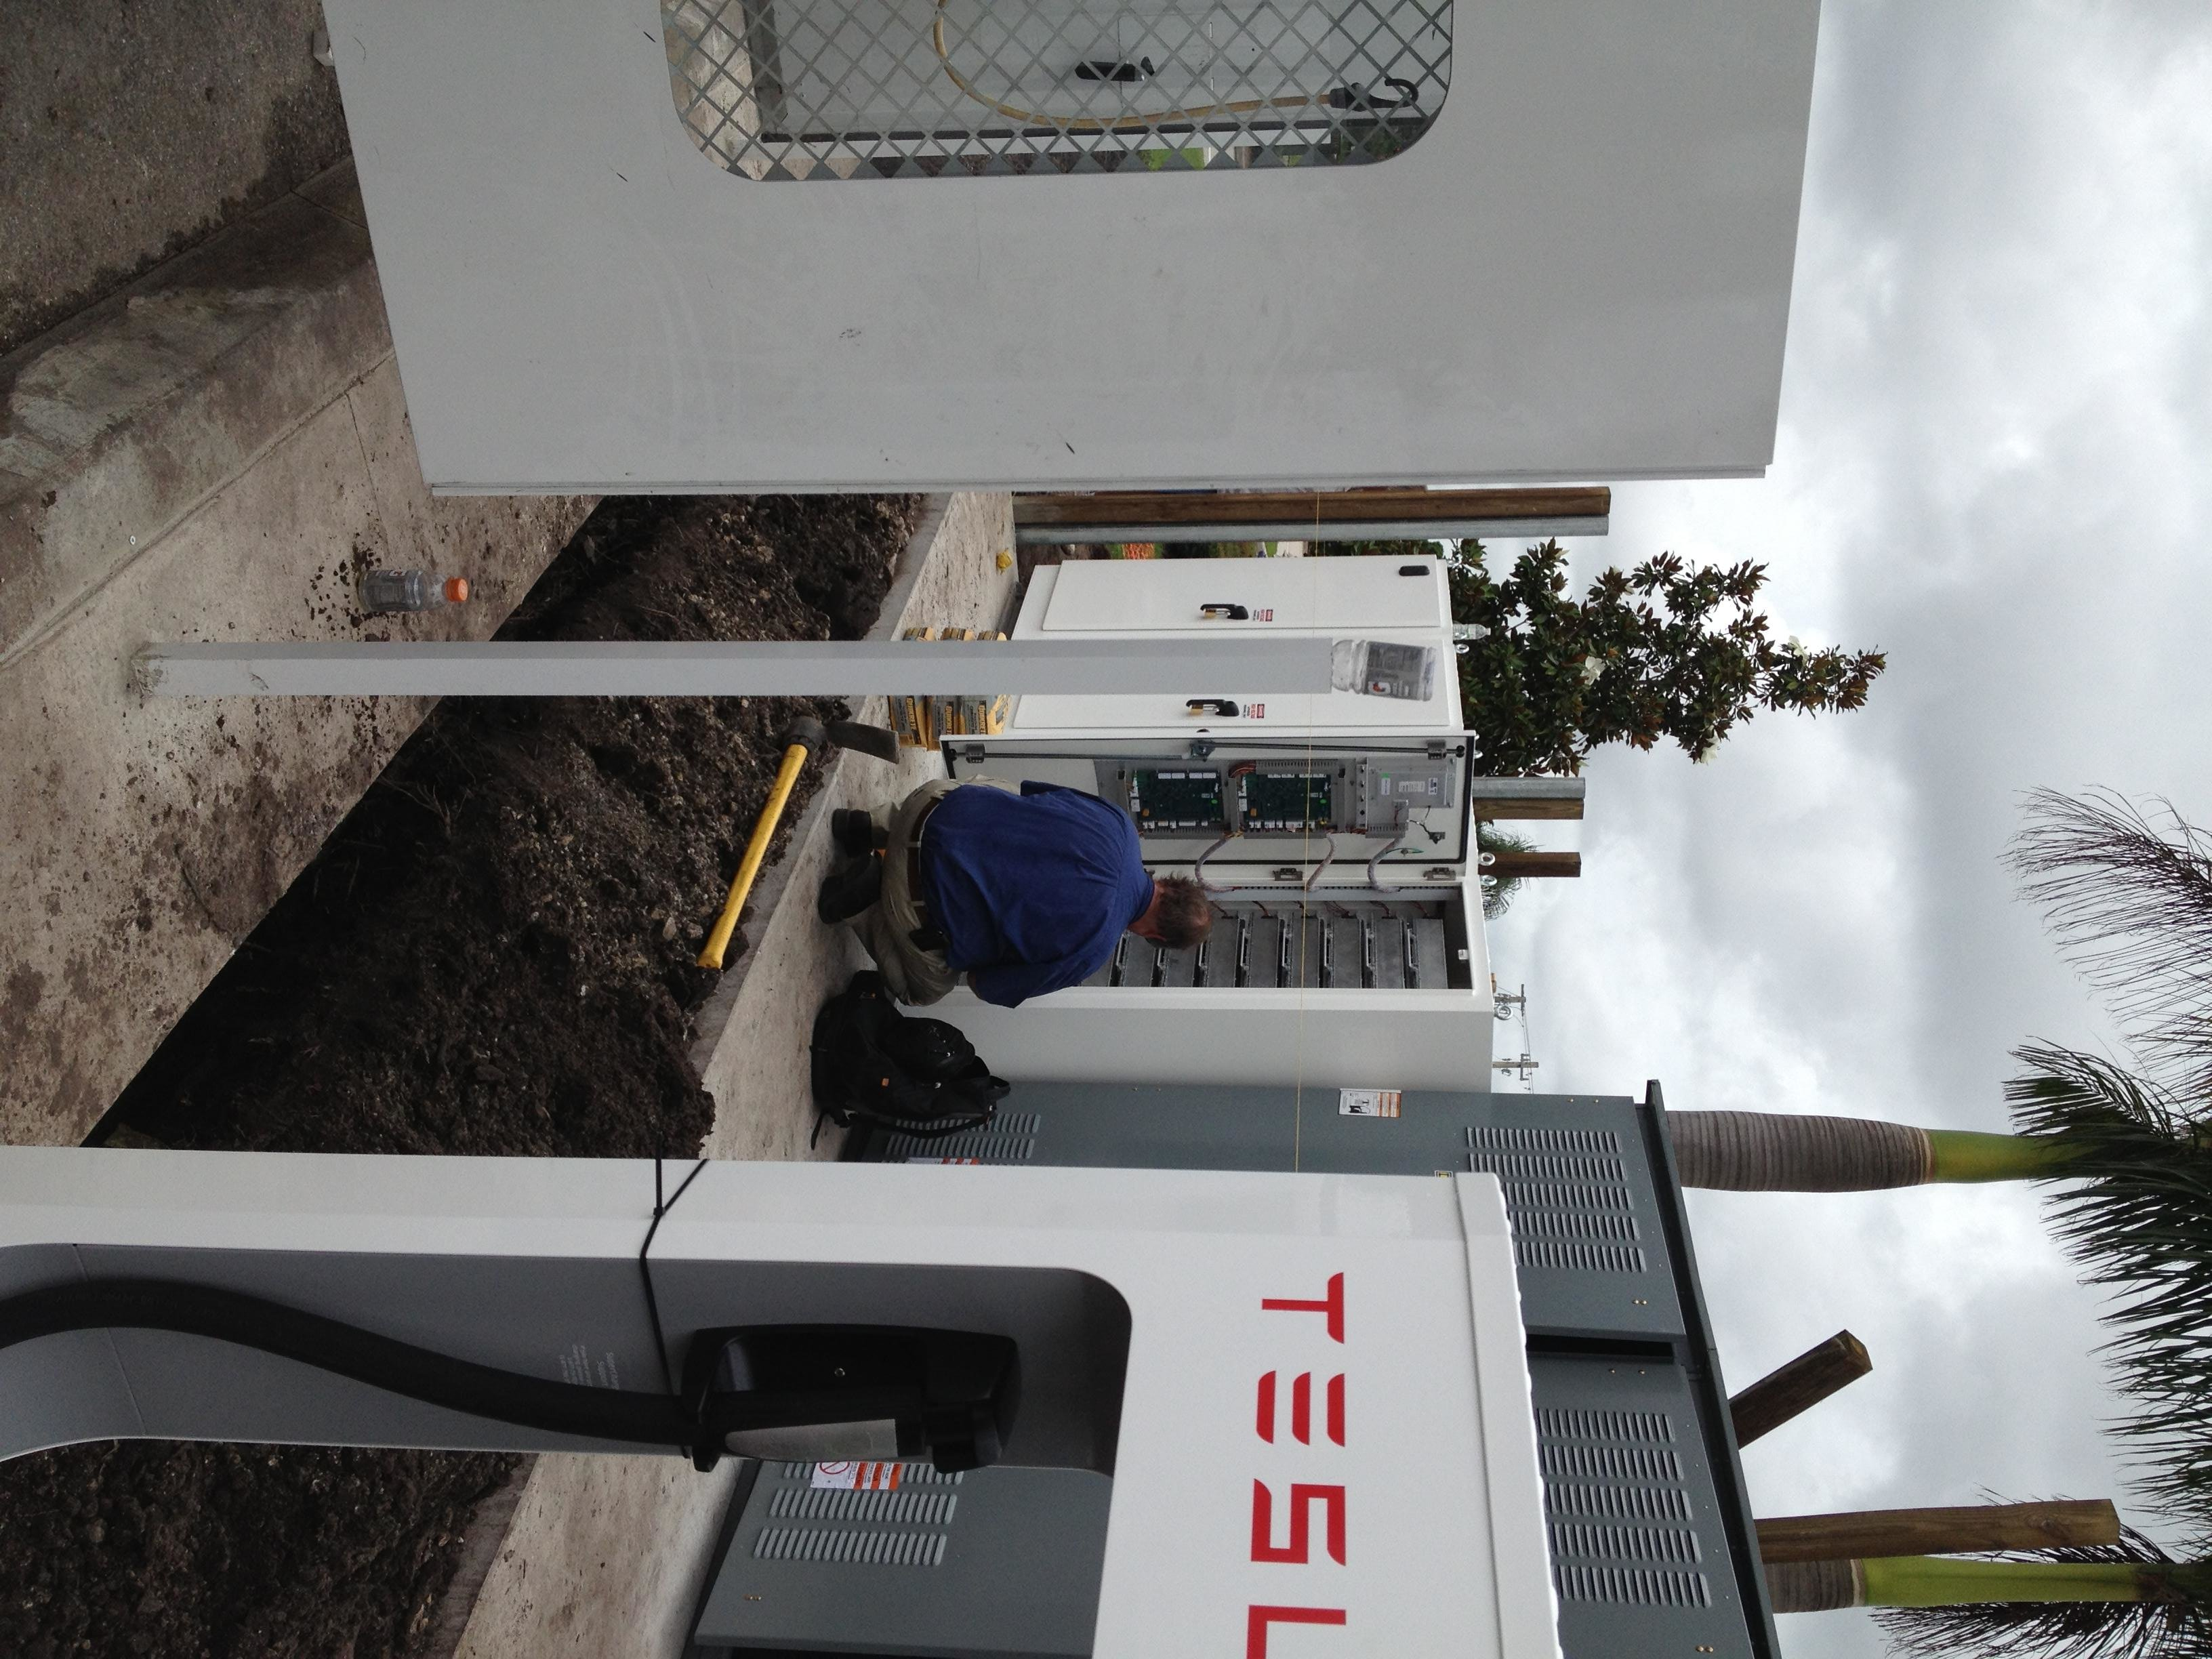 Port Saint Lucie Supercharger final inspection.jpg